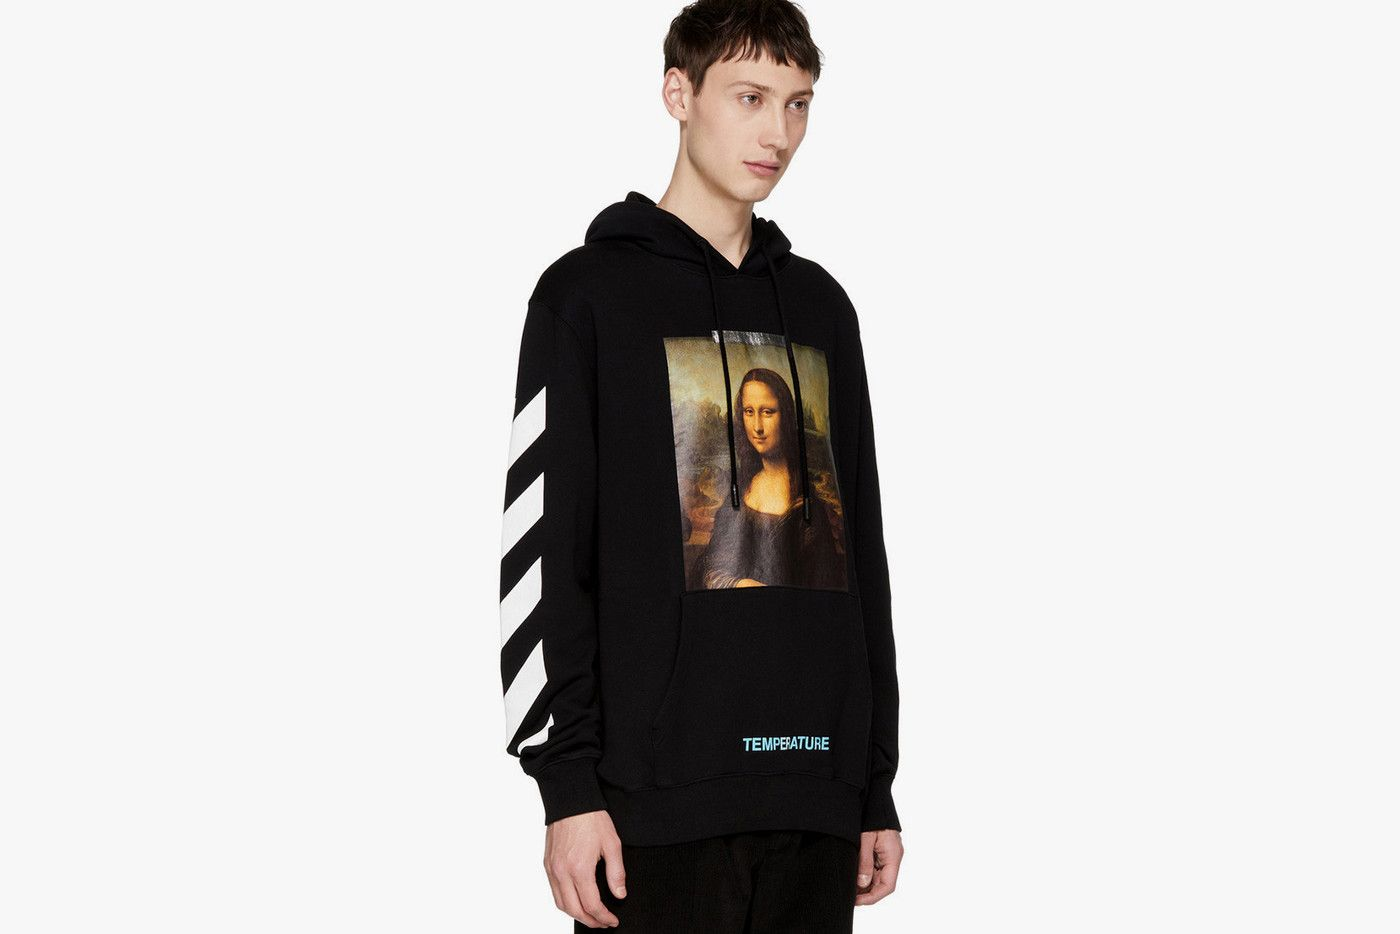 Off White Releases Ssense Exclusive Mona Lisa Hoodie Hoodies Off White Hoodie Hoodie Fashion [ 934 x 1400 Pixel ]